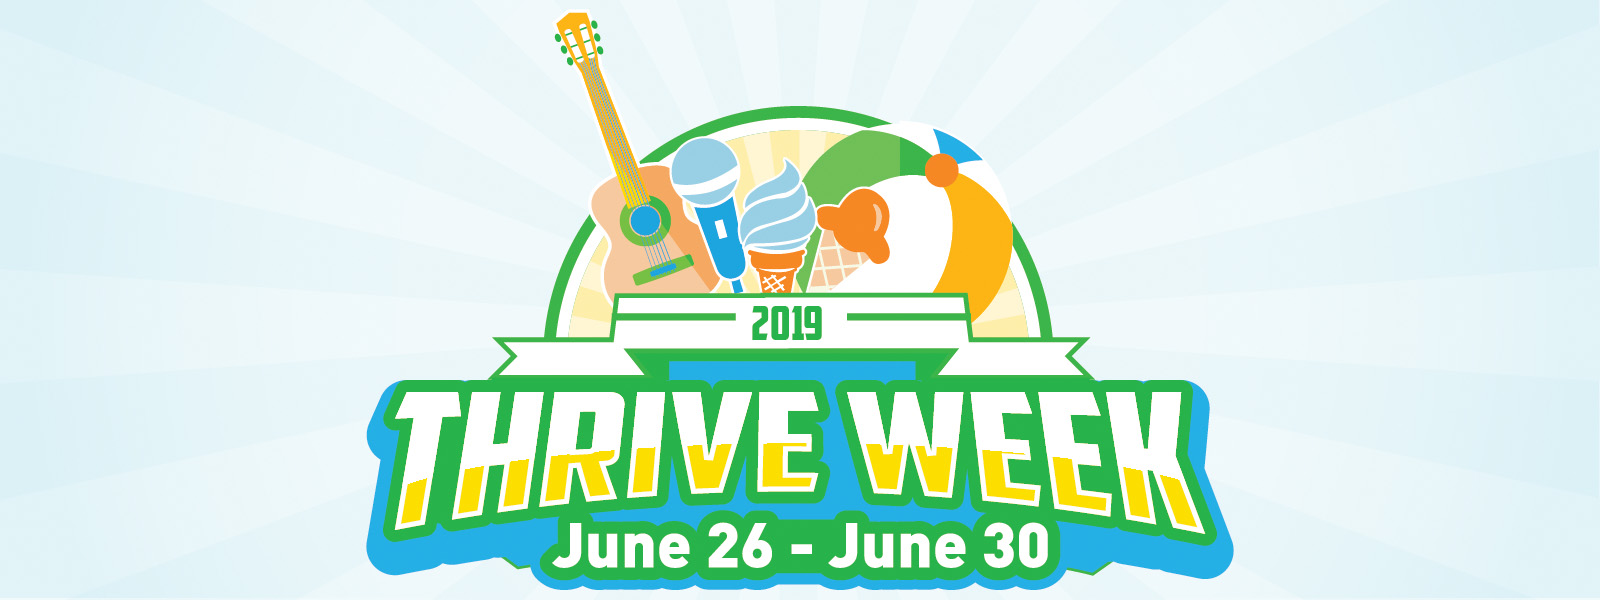 Thrive Week 2019